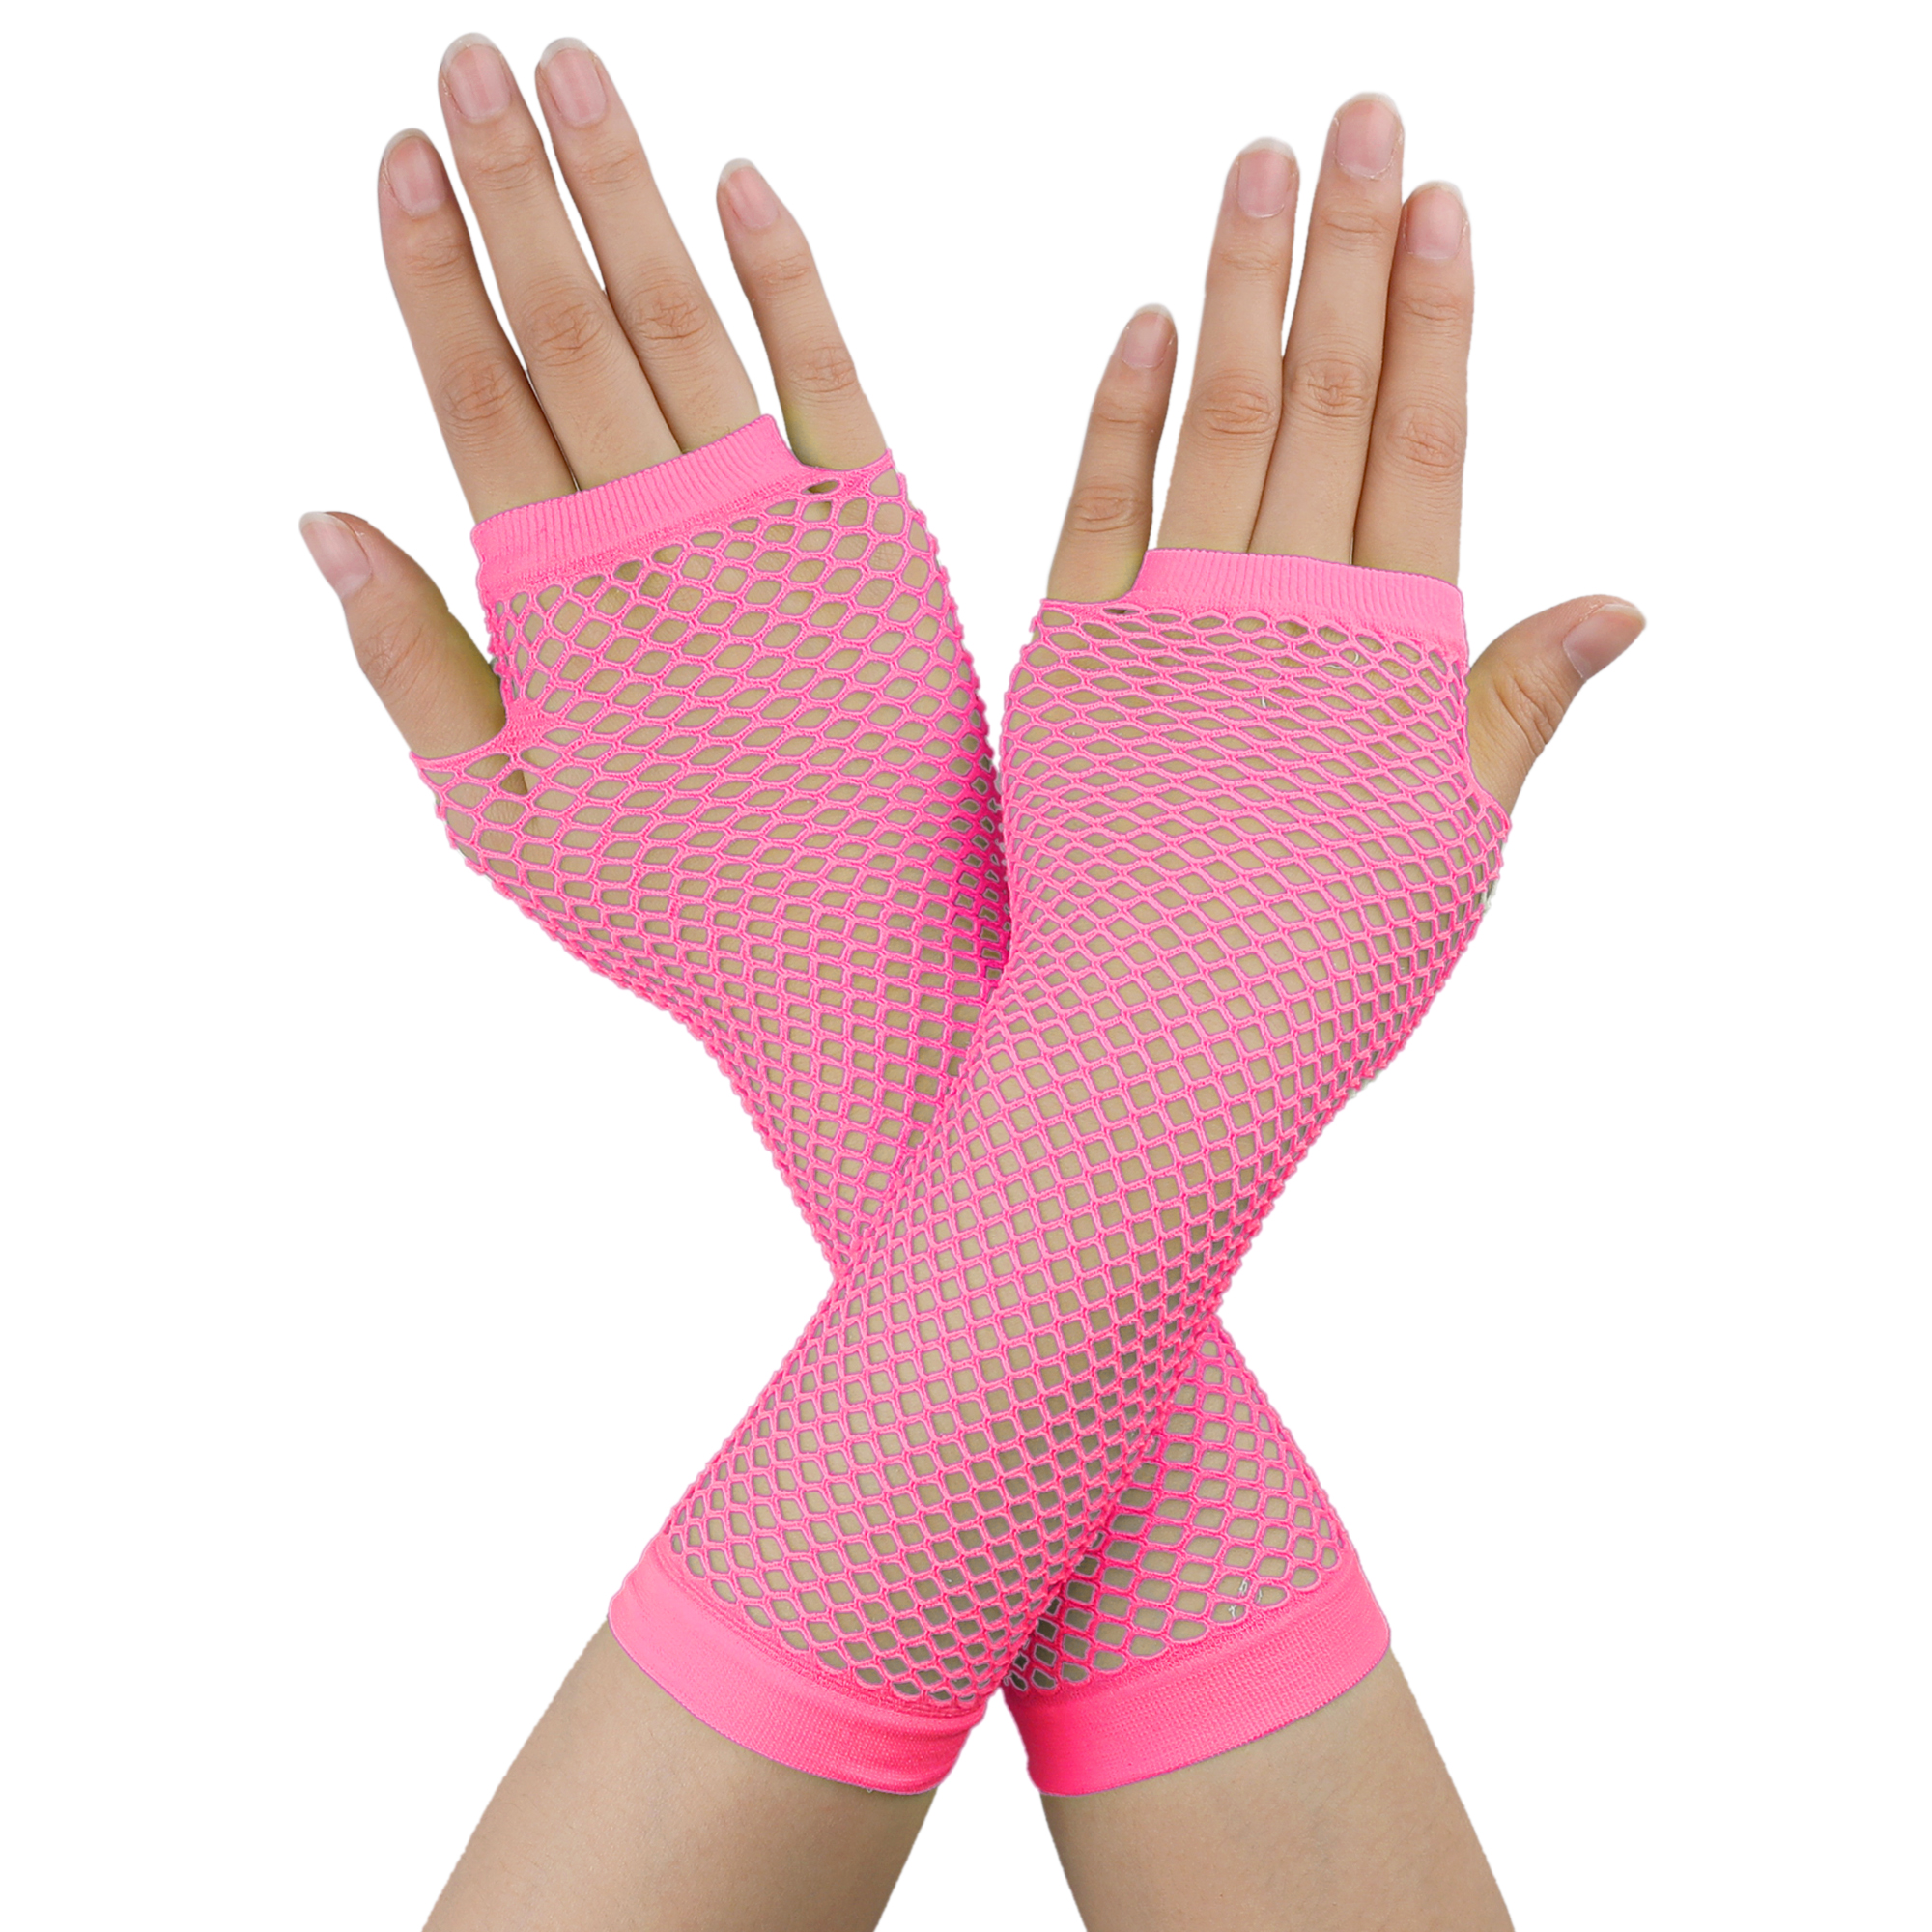 Pair Light Pink Stretchy Fishnet Elbow Fingerless Goth Arm Warmers for Lady